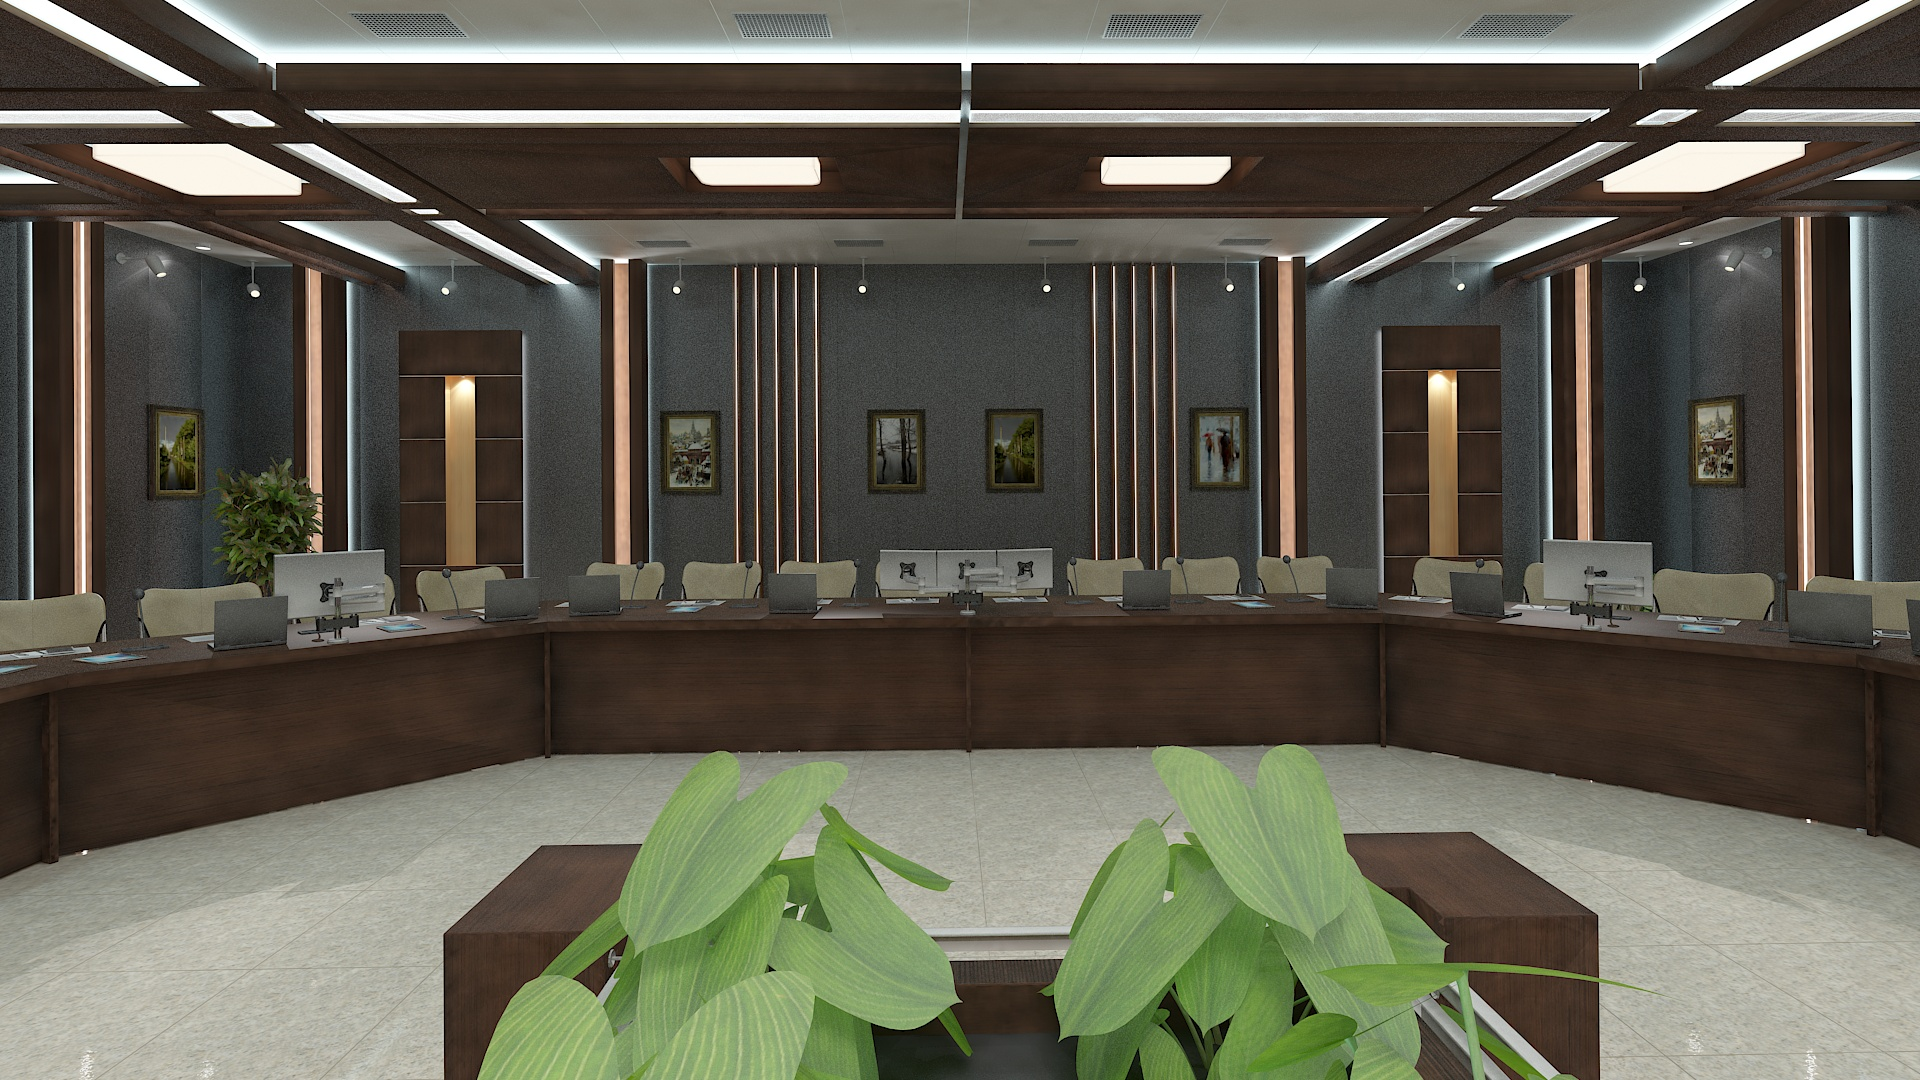 meeting room 1 3d model 3ds max dxf dwg 288135